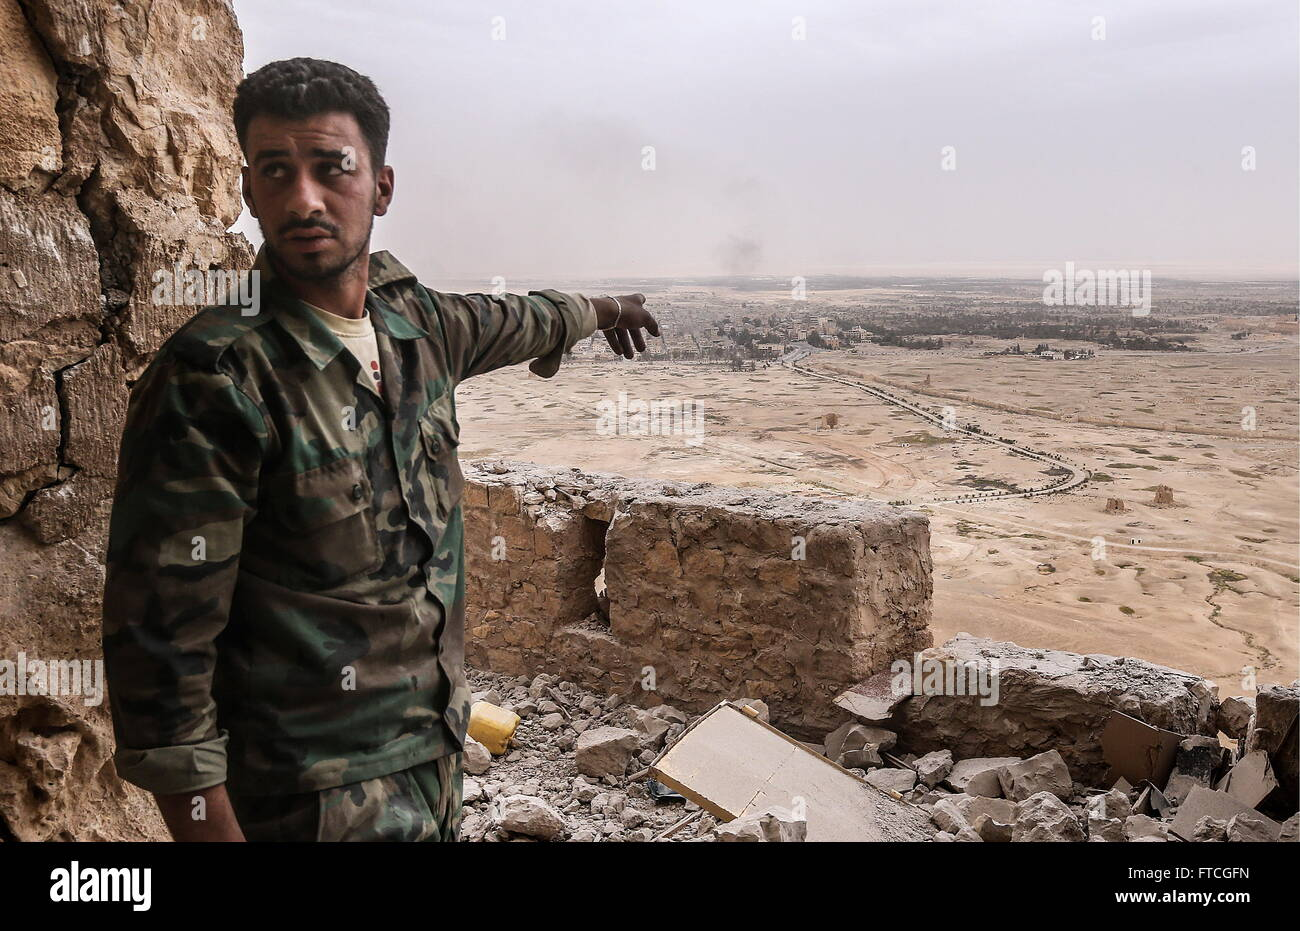 Palmyria, Syria. 26th Mar, 2016. A Syrian government army soldier points to Palmyra from the top of Fakhr al-Din - Stock Image